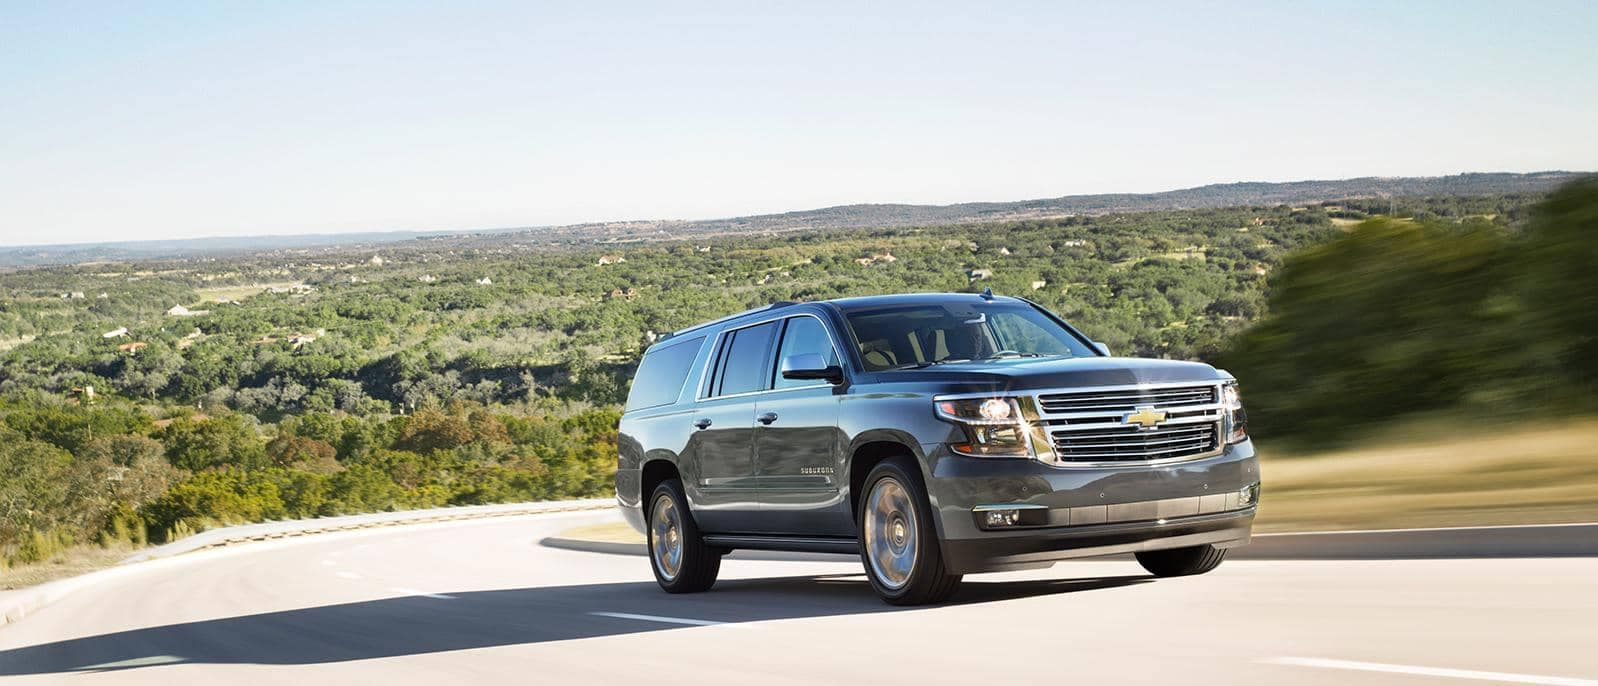 Chevy Tahoe Driving up A hill